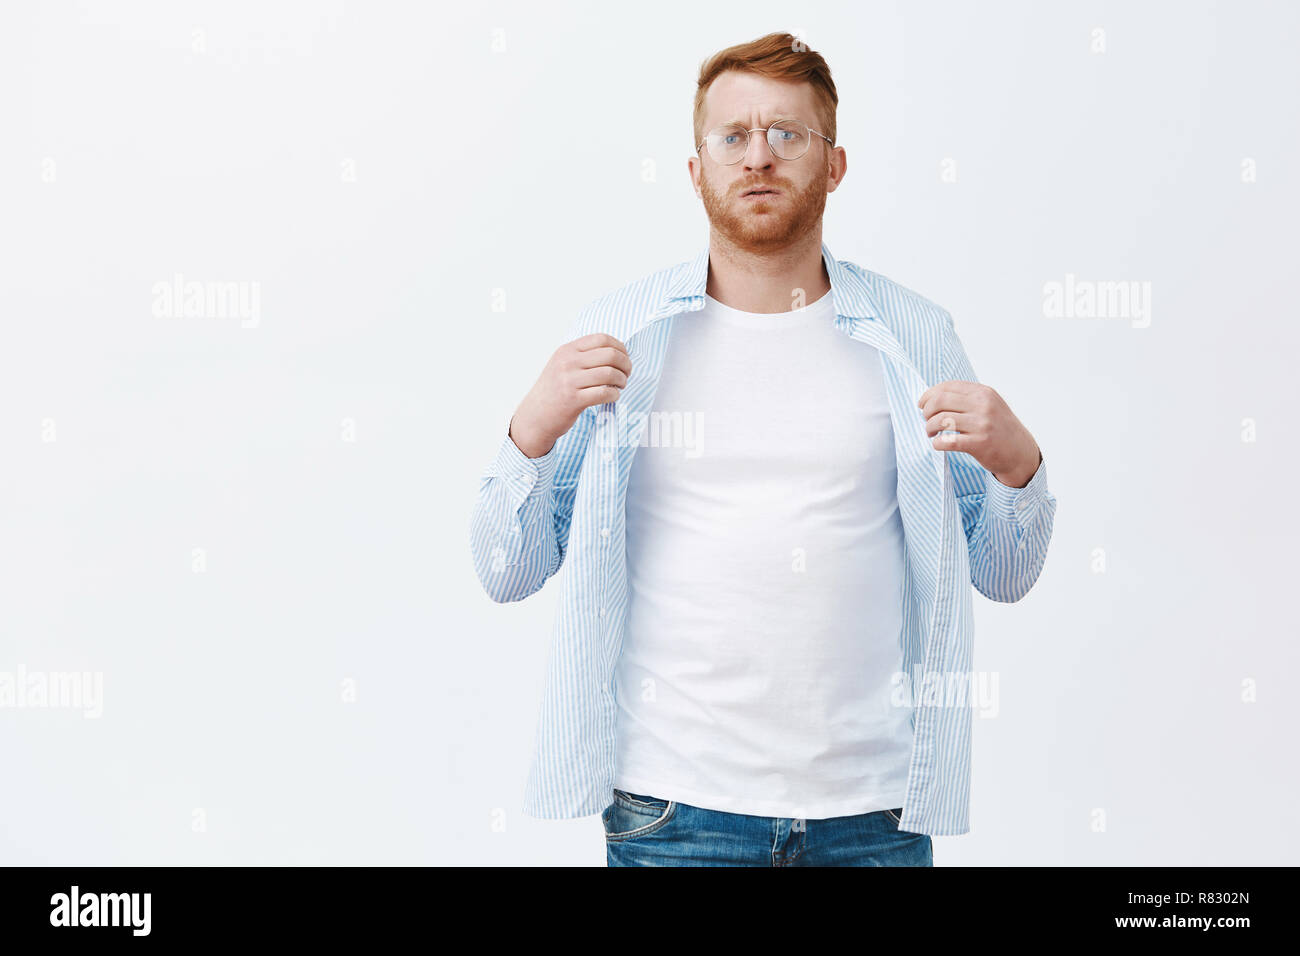 Very hot inside office, where is air cooler. Portrait of displeased suffering from summer warm weather male with red hair and beard in glasses, waving shirt to cool body, breathing out from heat - Stock Image